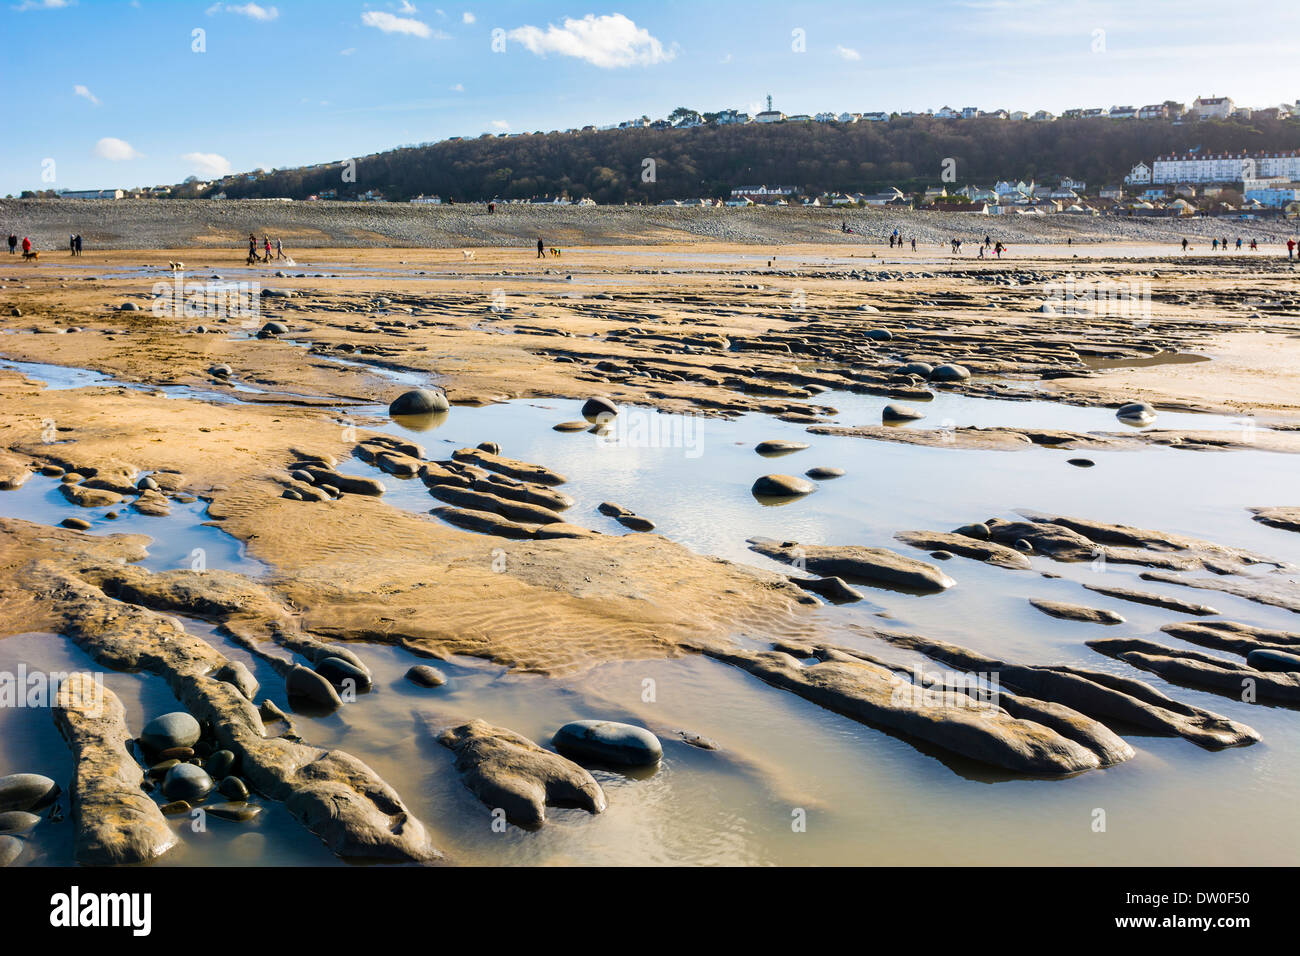 Clay and peat beds containing an ancient forest exposed on the beach at Westward Ho! shortly after the winter storms of 2014. North Devon, England. - Stock Image